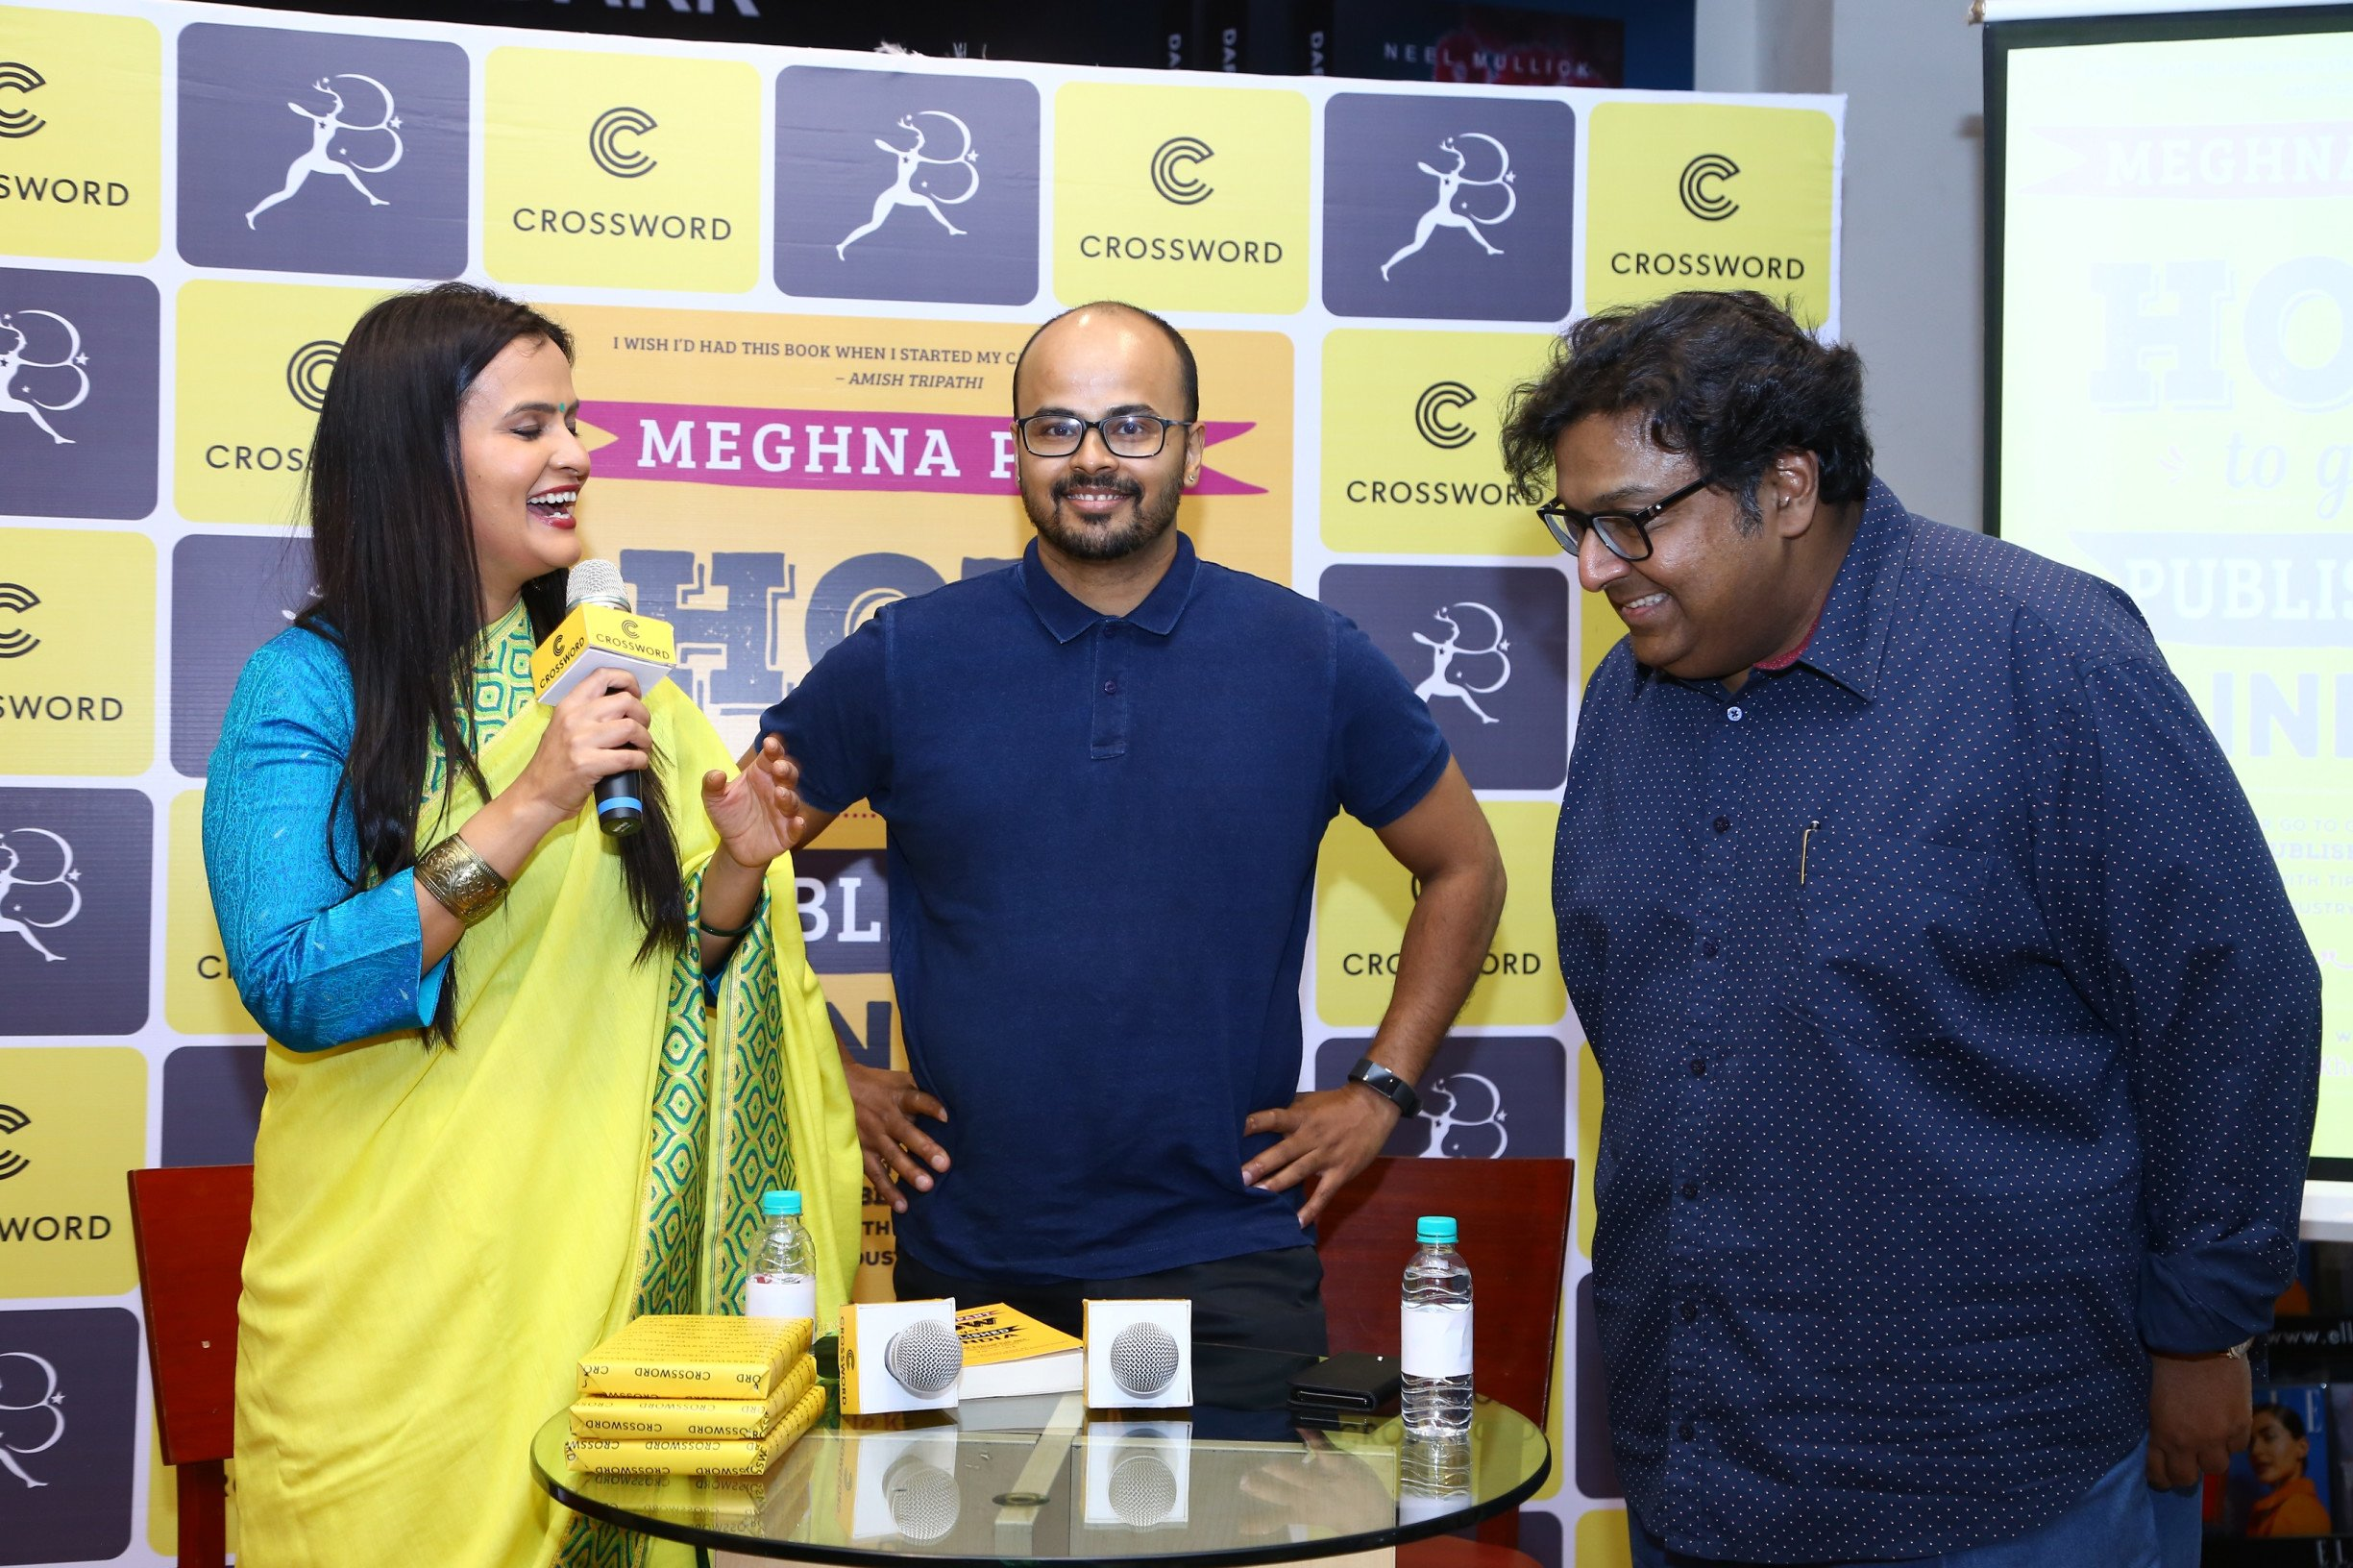 Crossword Bookstores hosts Meghna Pant's 'How to Get Published in India'